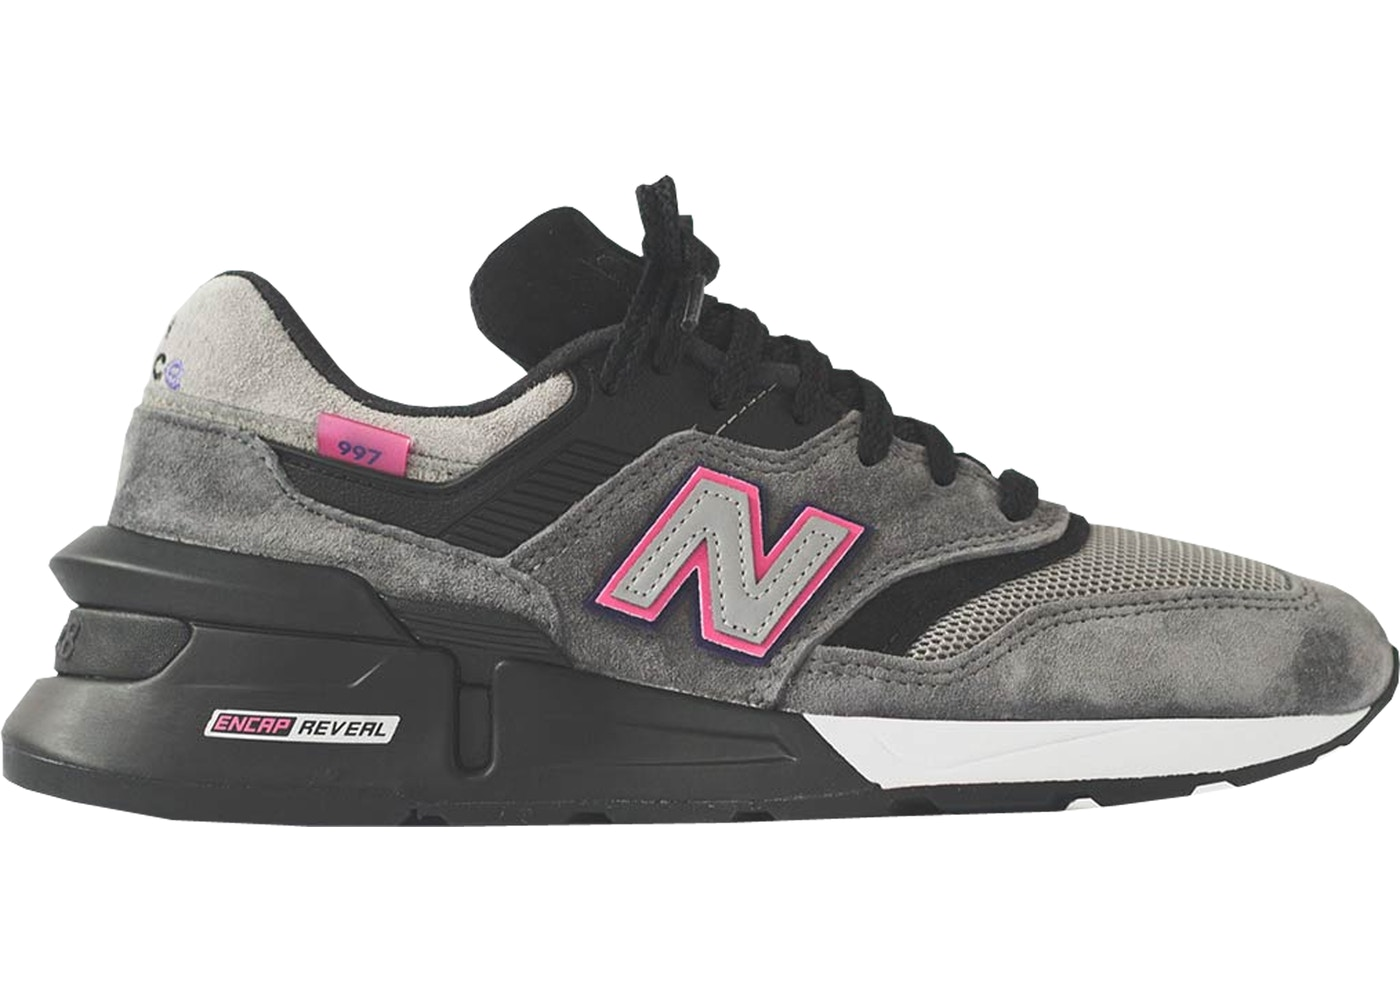 newest 30093 91910 New Balance 997S Fusion Kith x United Arrows and Sons Grey Pink